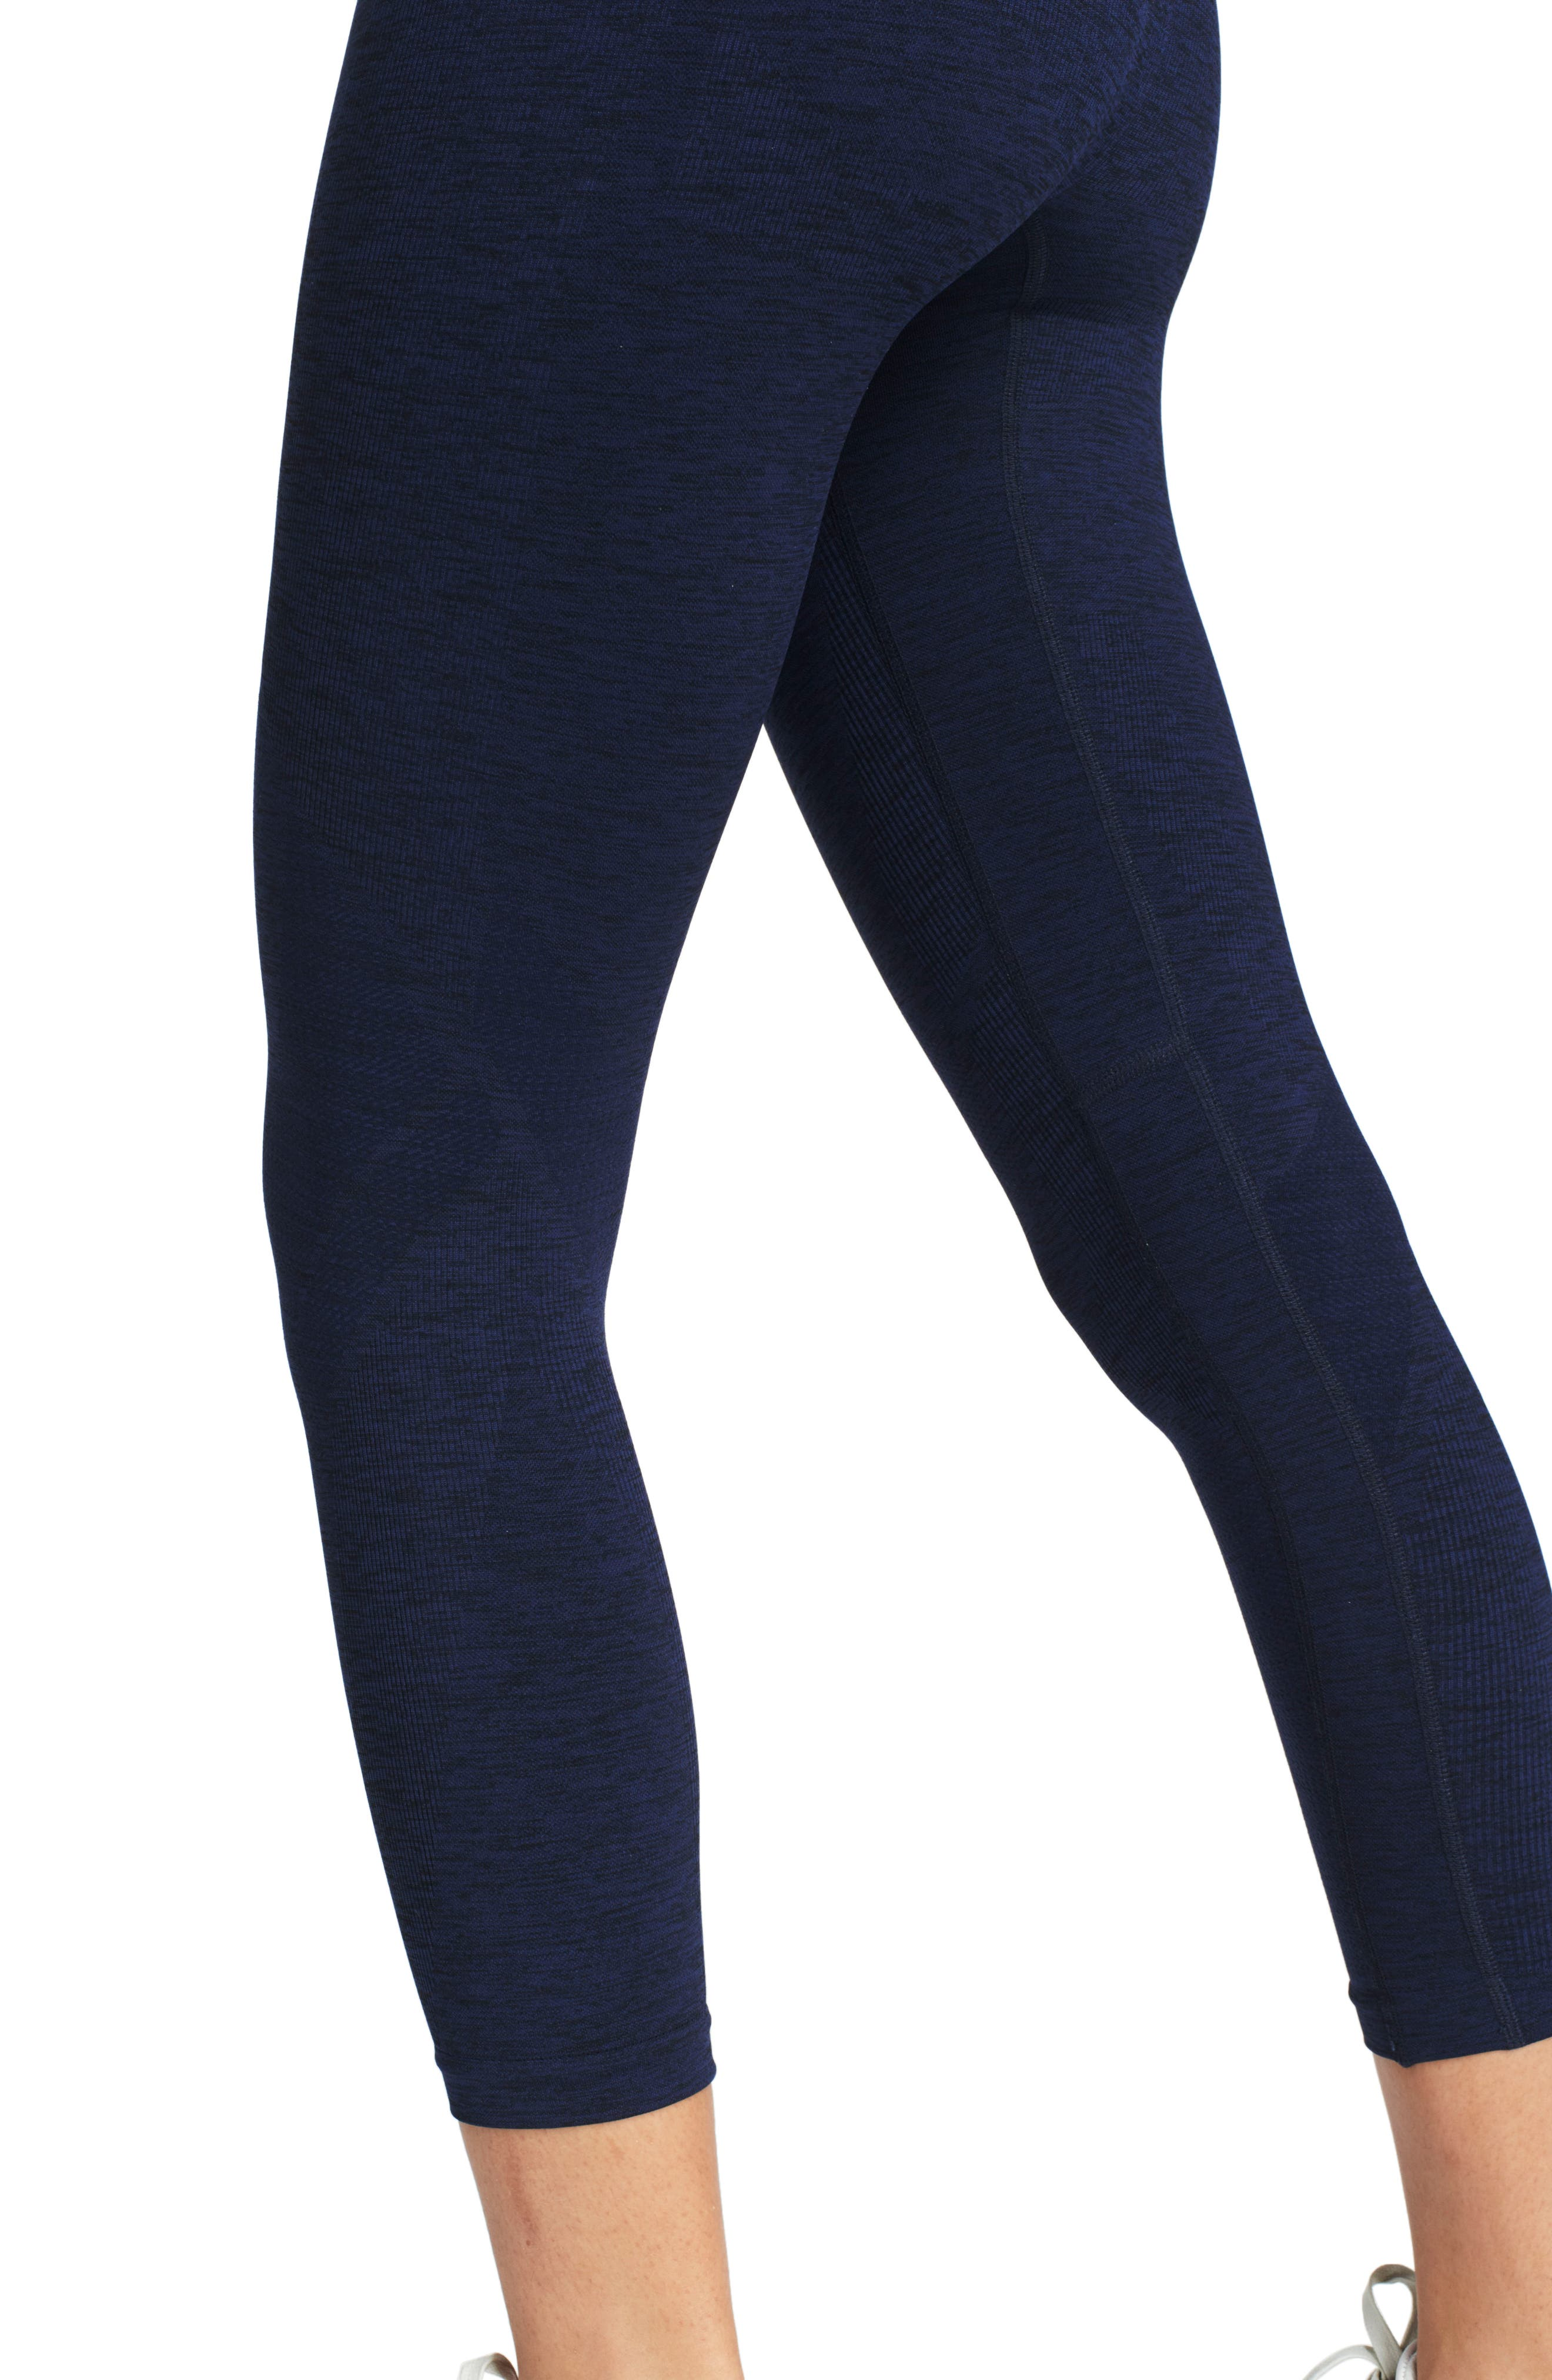 Six Eight High Waist Crop Leggings,                             Alternate thumbnail 2, color,                             400